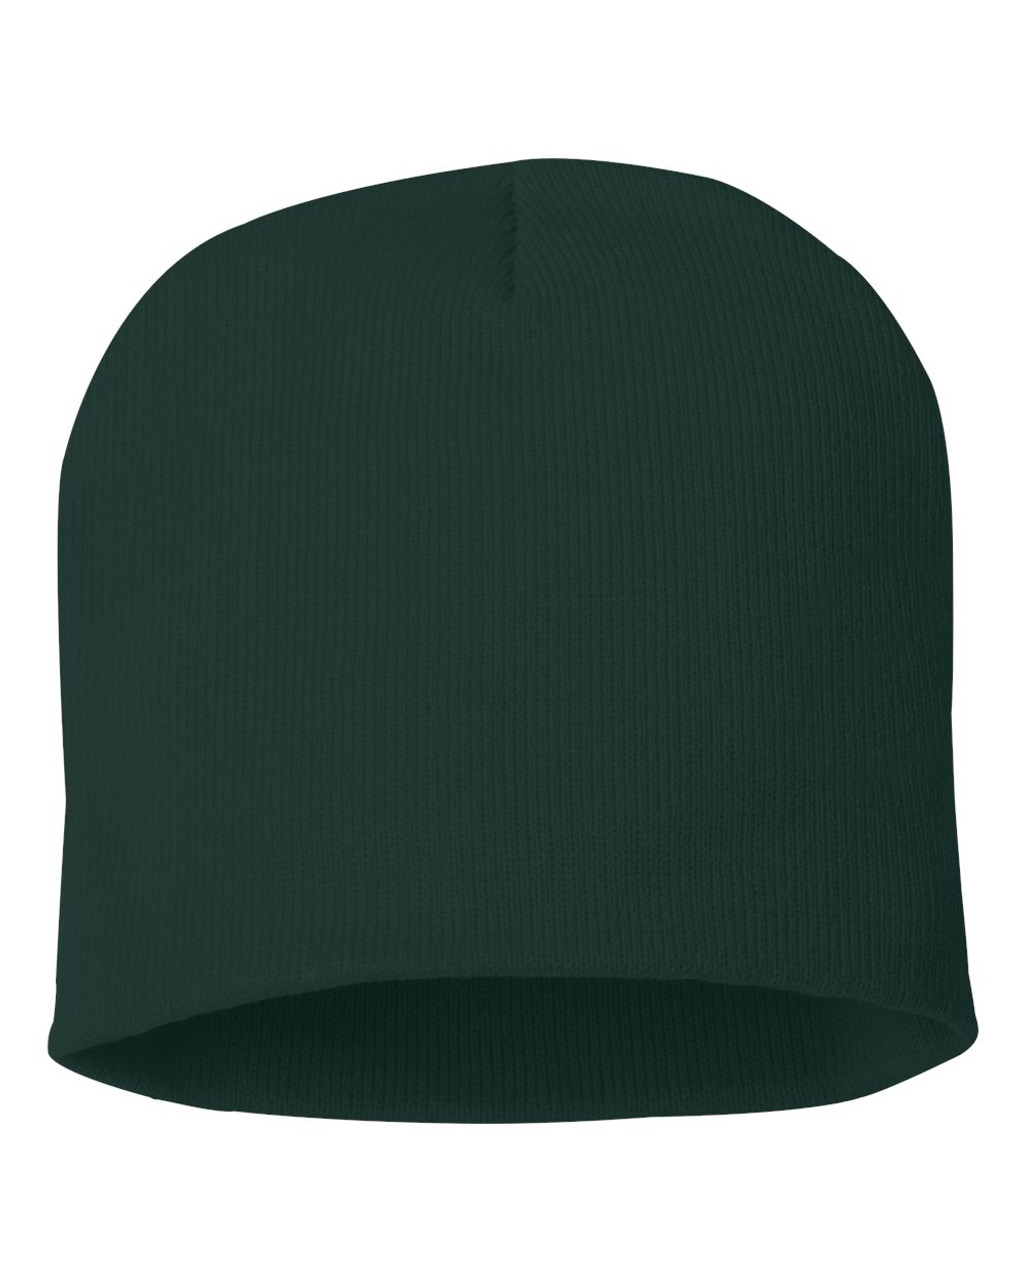 "Forest - SP08 Sportsman Acrylic Knit 8"" Toque 